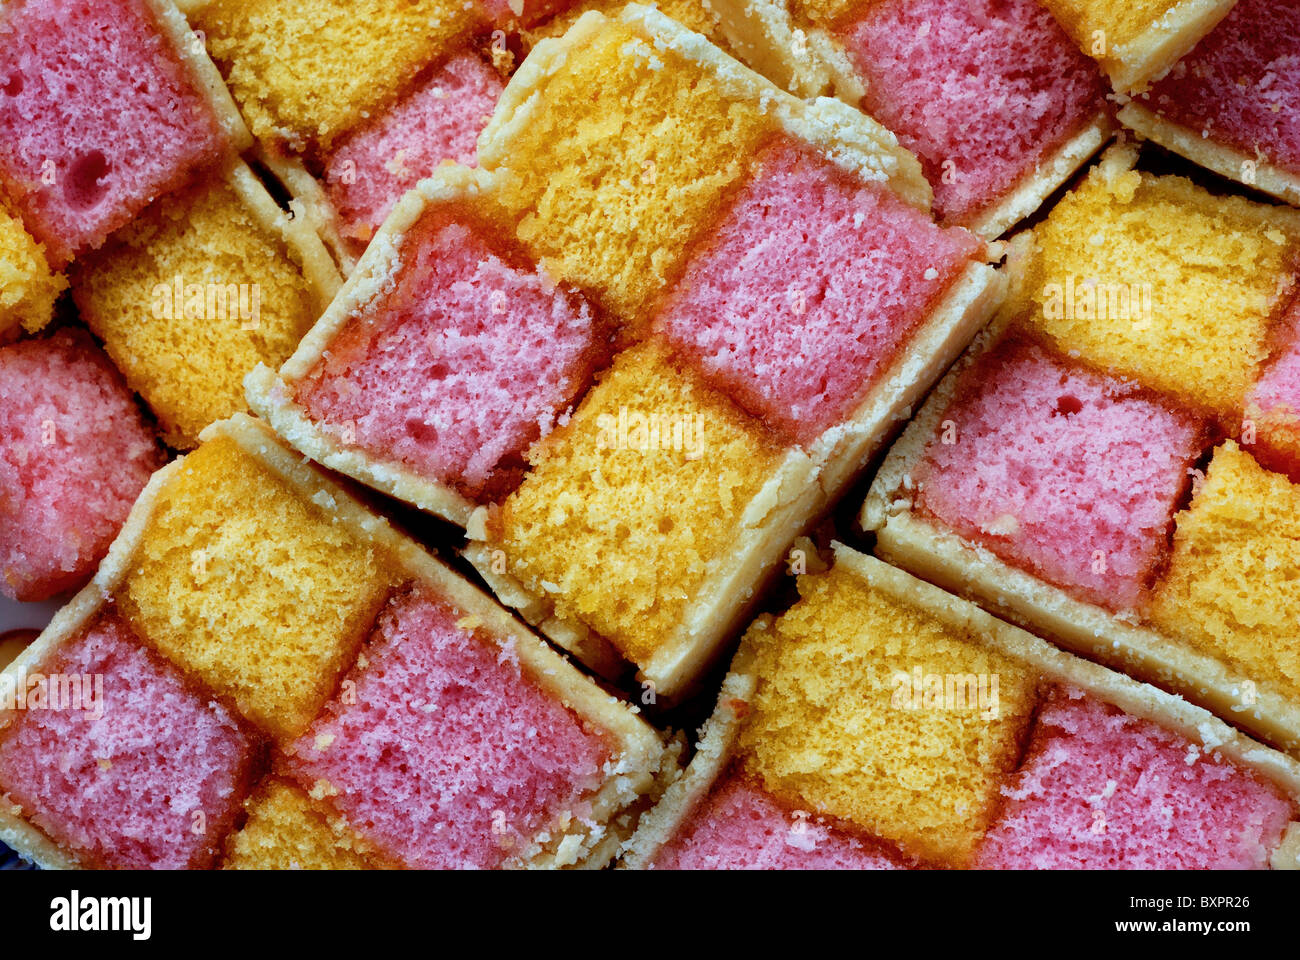 Slices of Battenburg cake,traditional English, filled with jam and with a marzipan icing - Stock Image